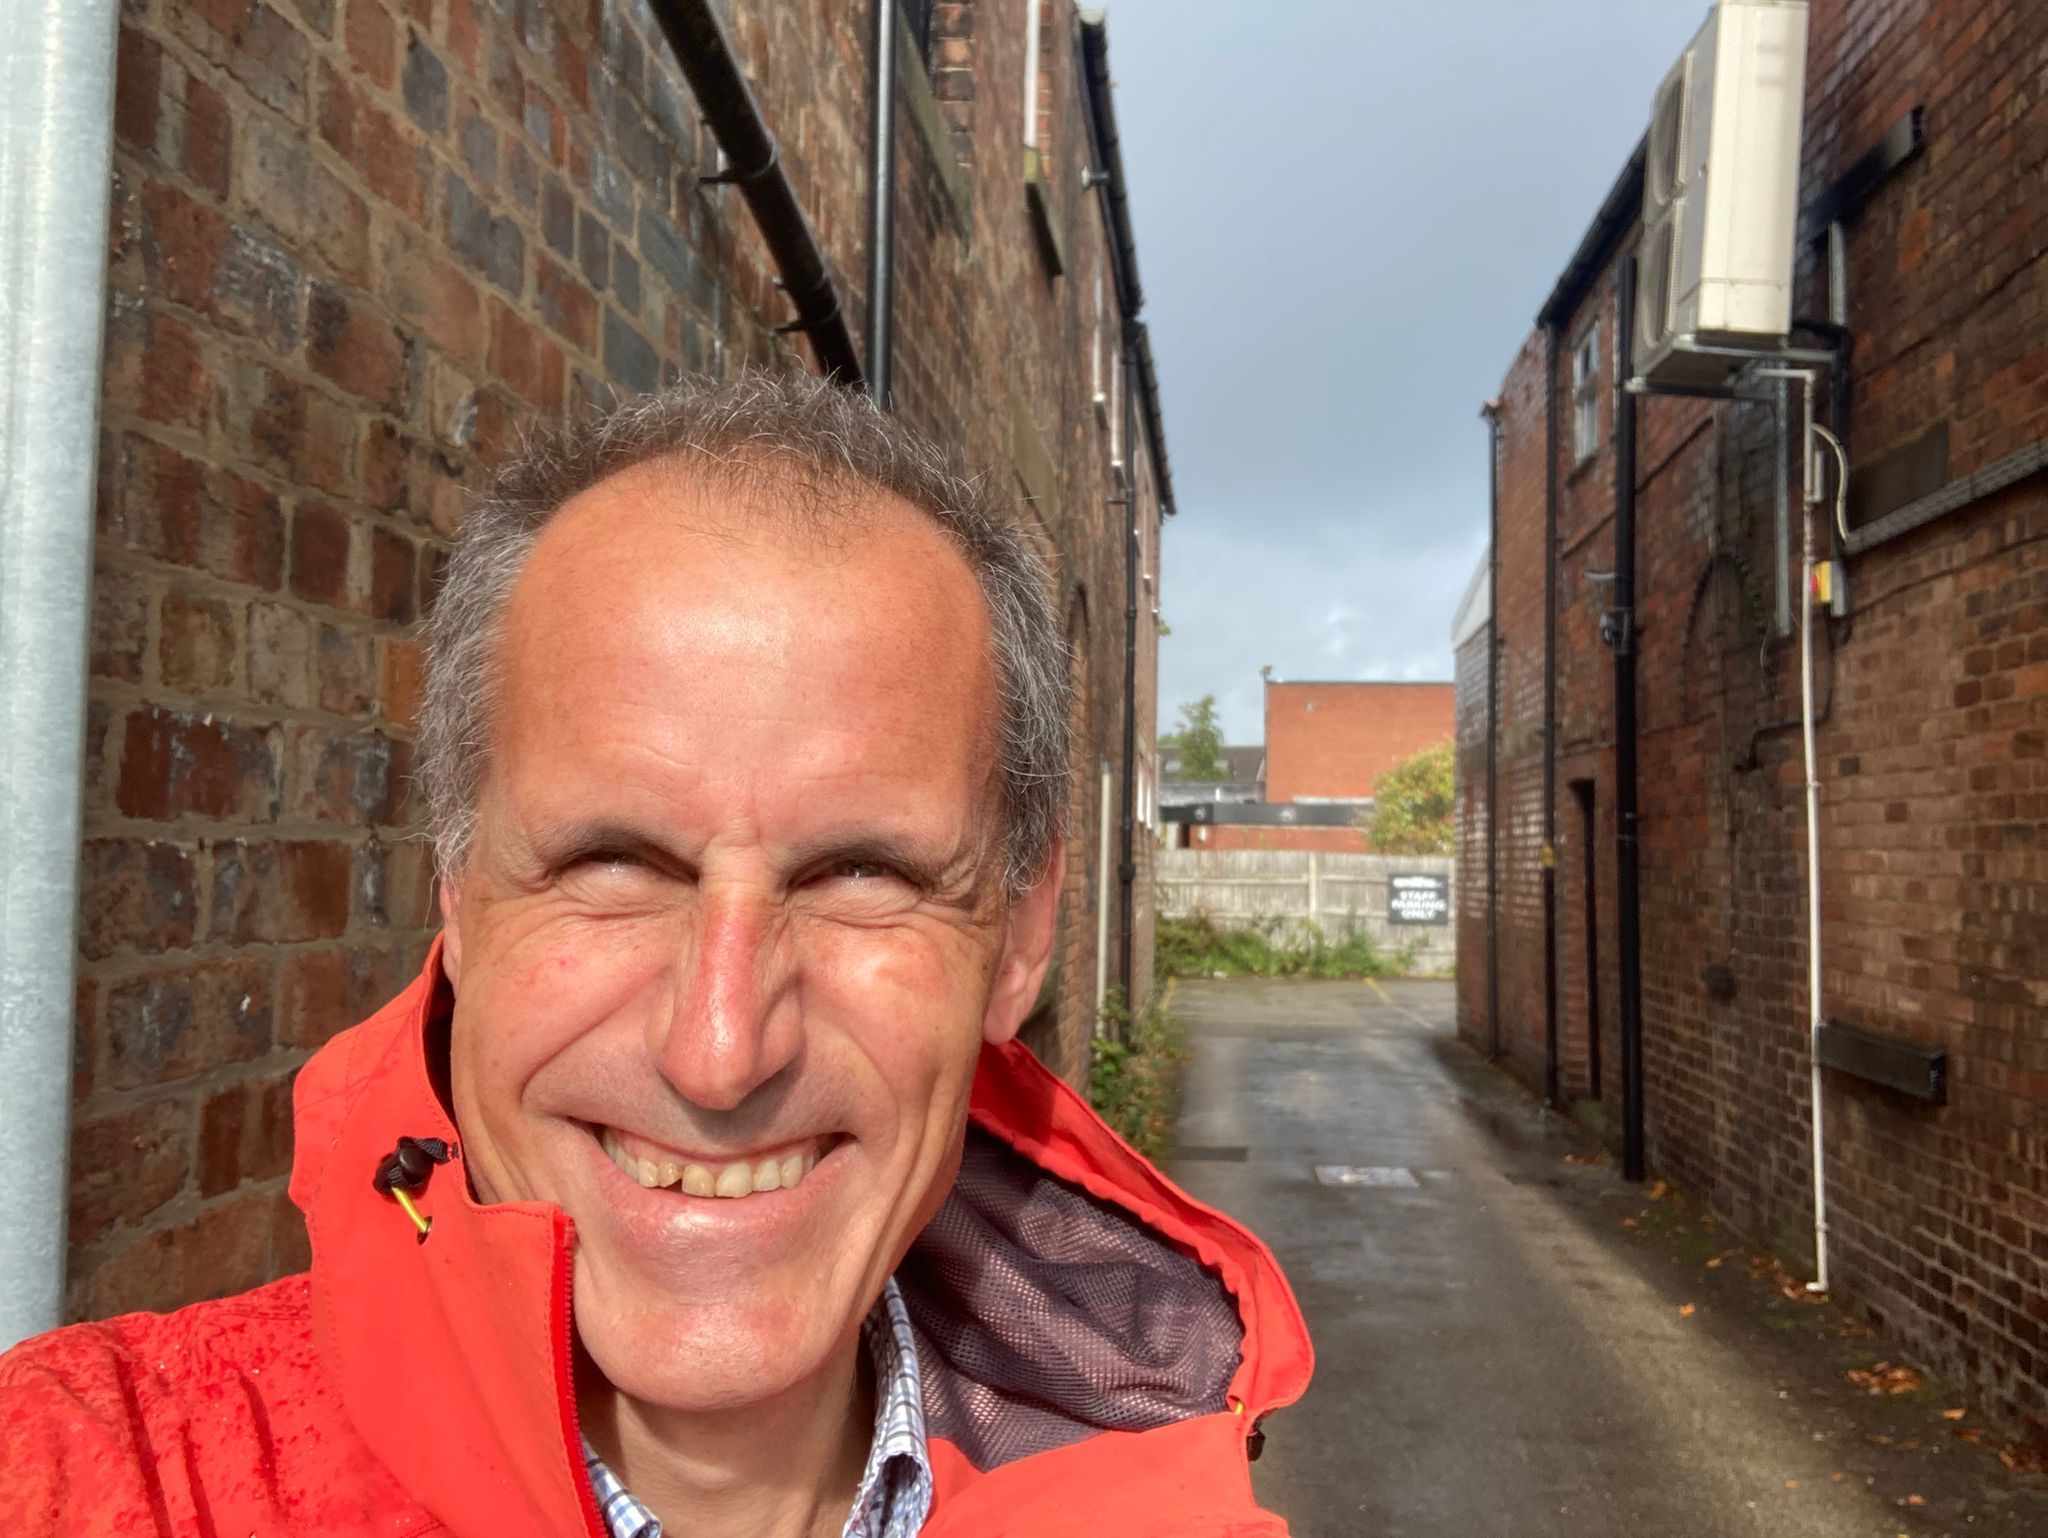 MP praises alleyways project for offering boost to Formby Village